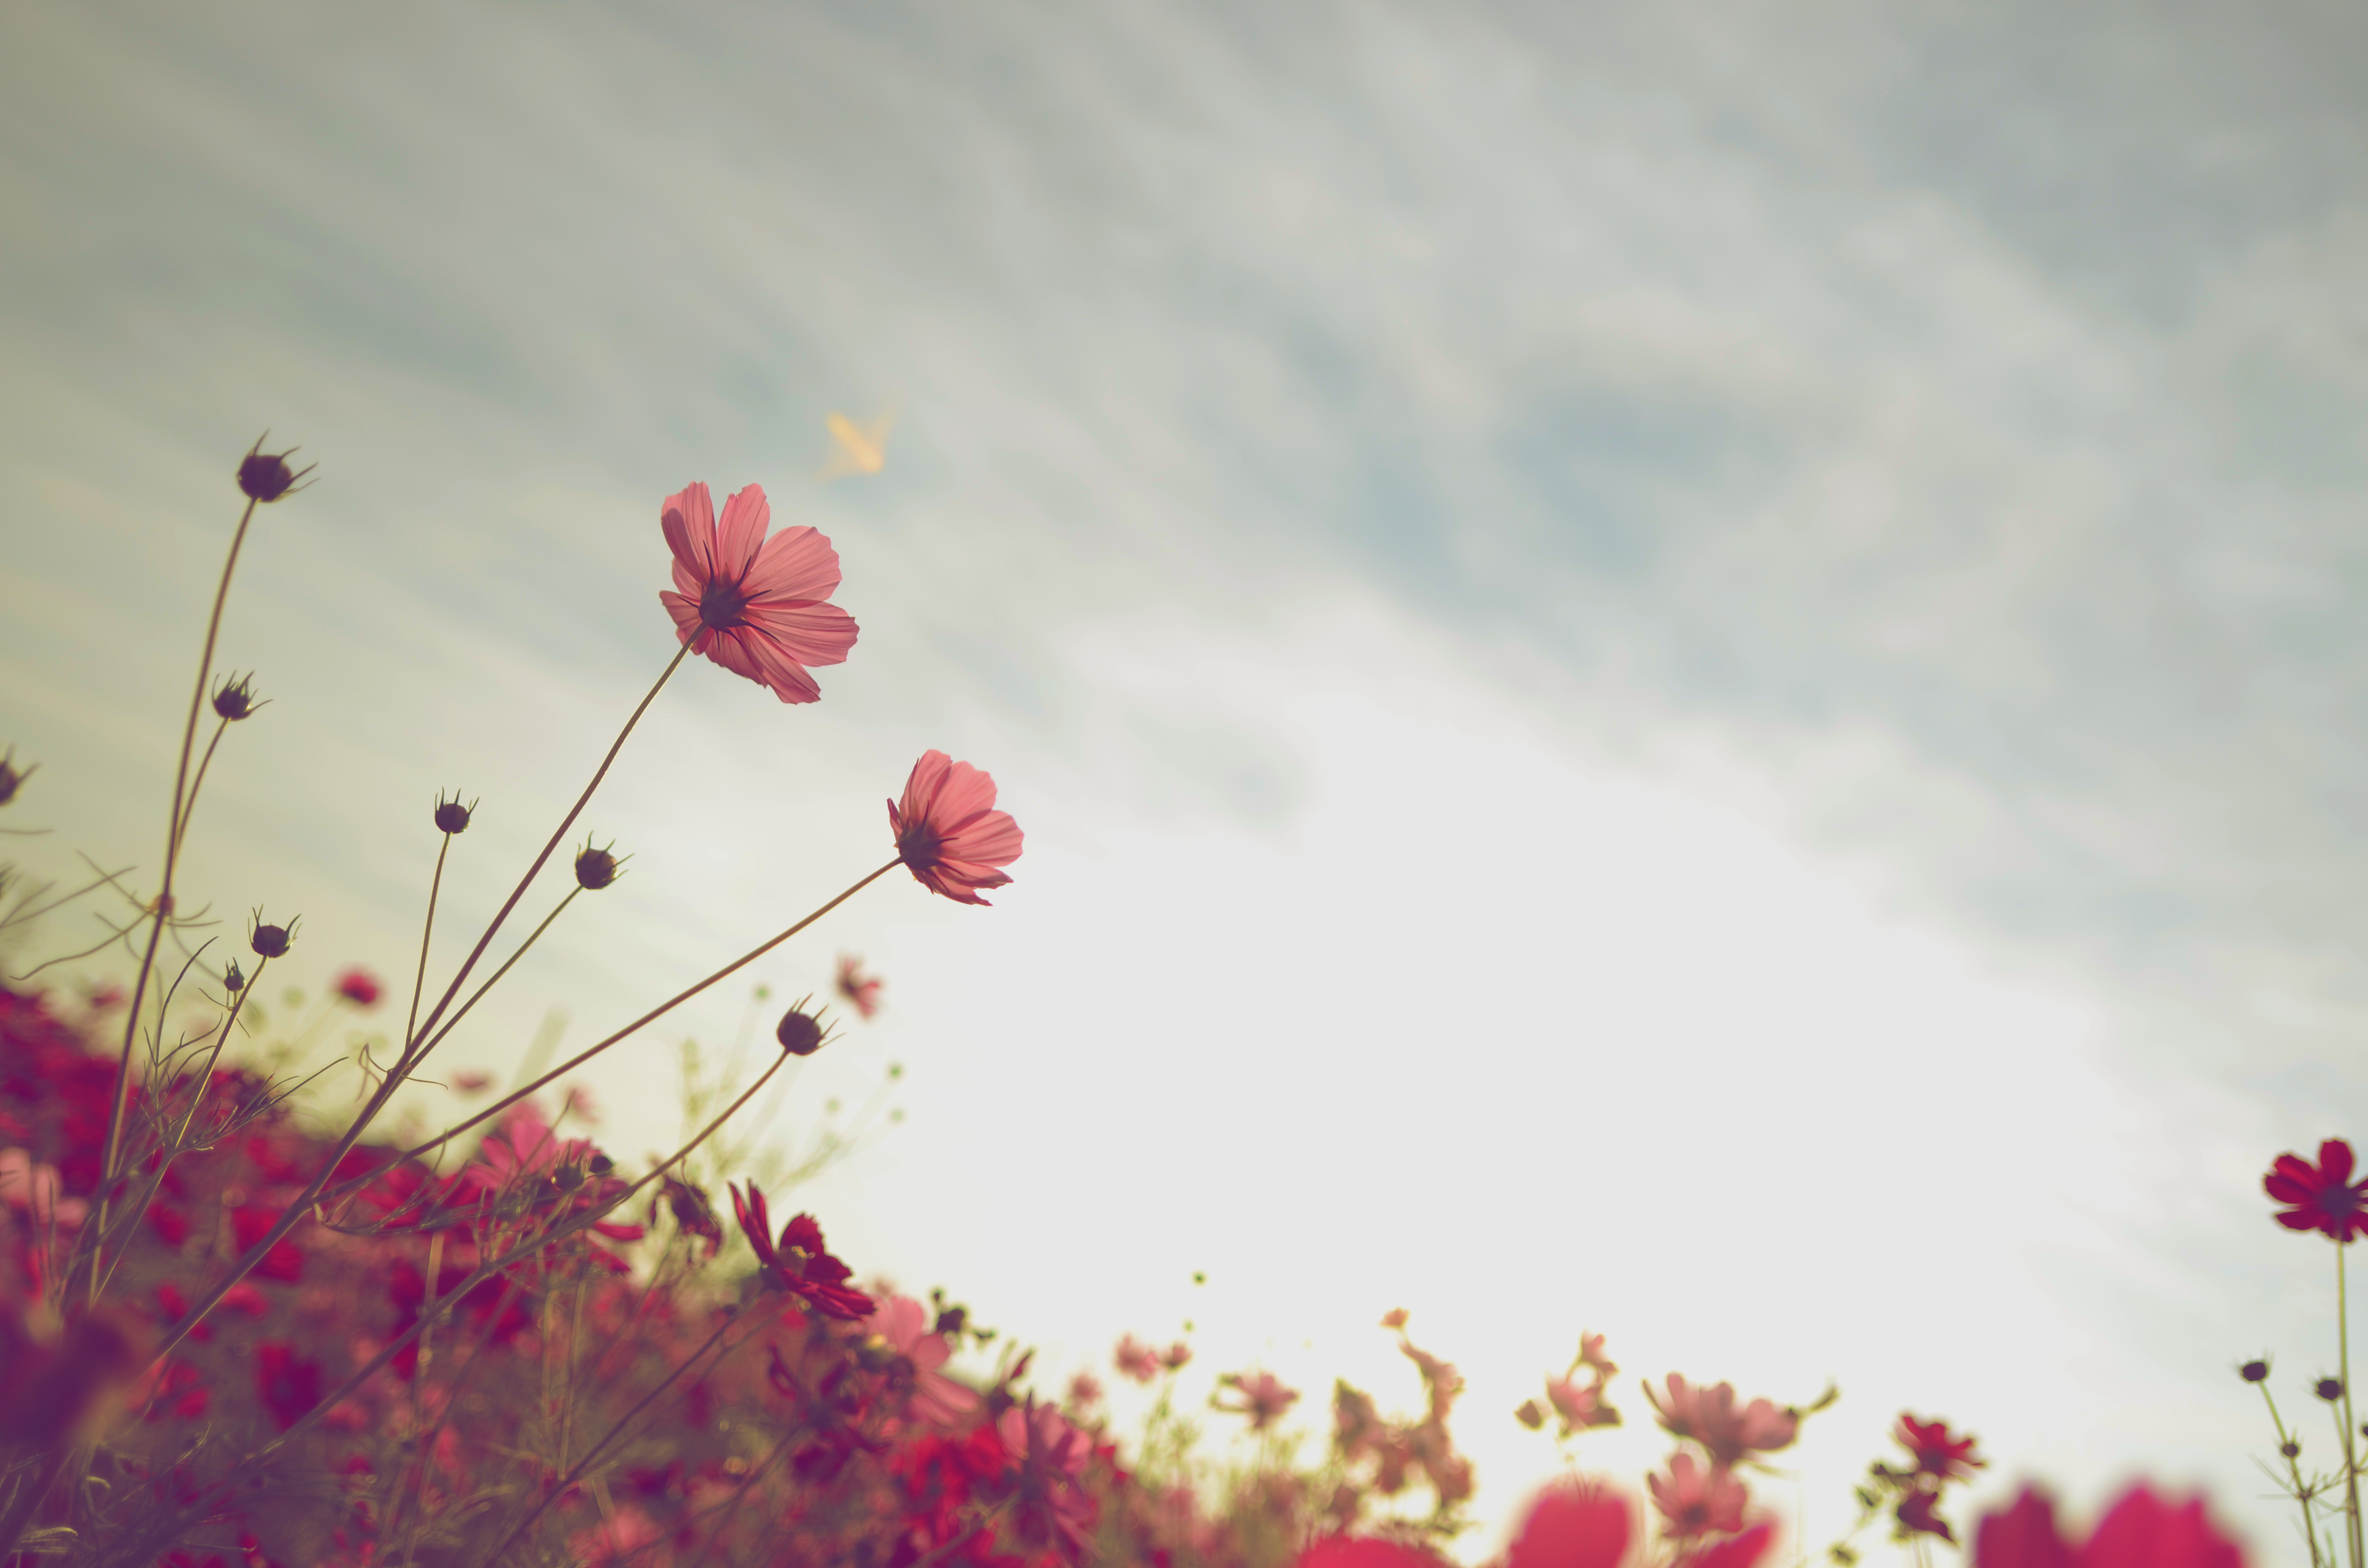 134002 Screensavers and Wallpapers Flower Bed for phone. Download Flowers, Sky, Summer, Flower, Bloom, Flowering, Flower Bed, Flowerbed, Kosmeya, Cosmos pictures for free